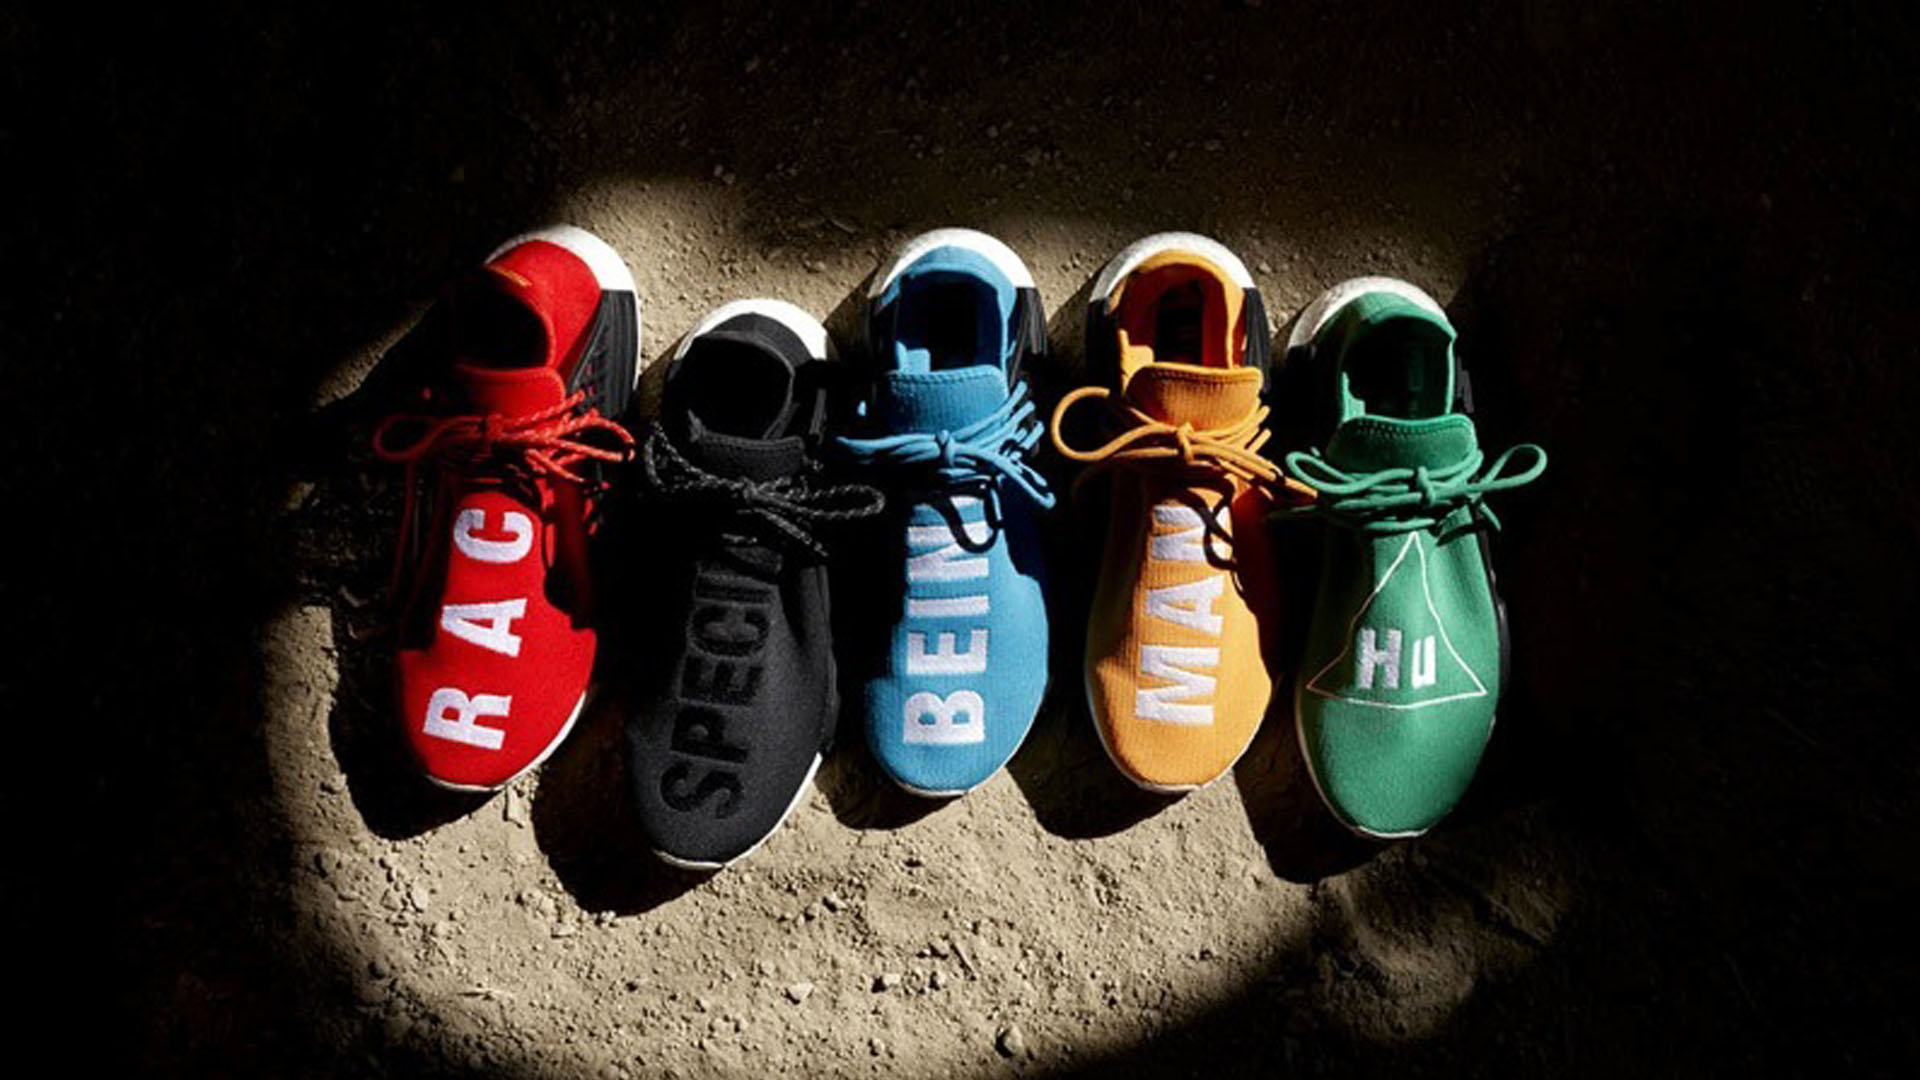 e2ca9f868 ADIDAS ORIGINALS LAUNCHES PHARELL WILLIAMS HU IN THE PHILIPPINES